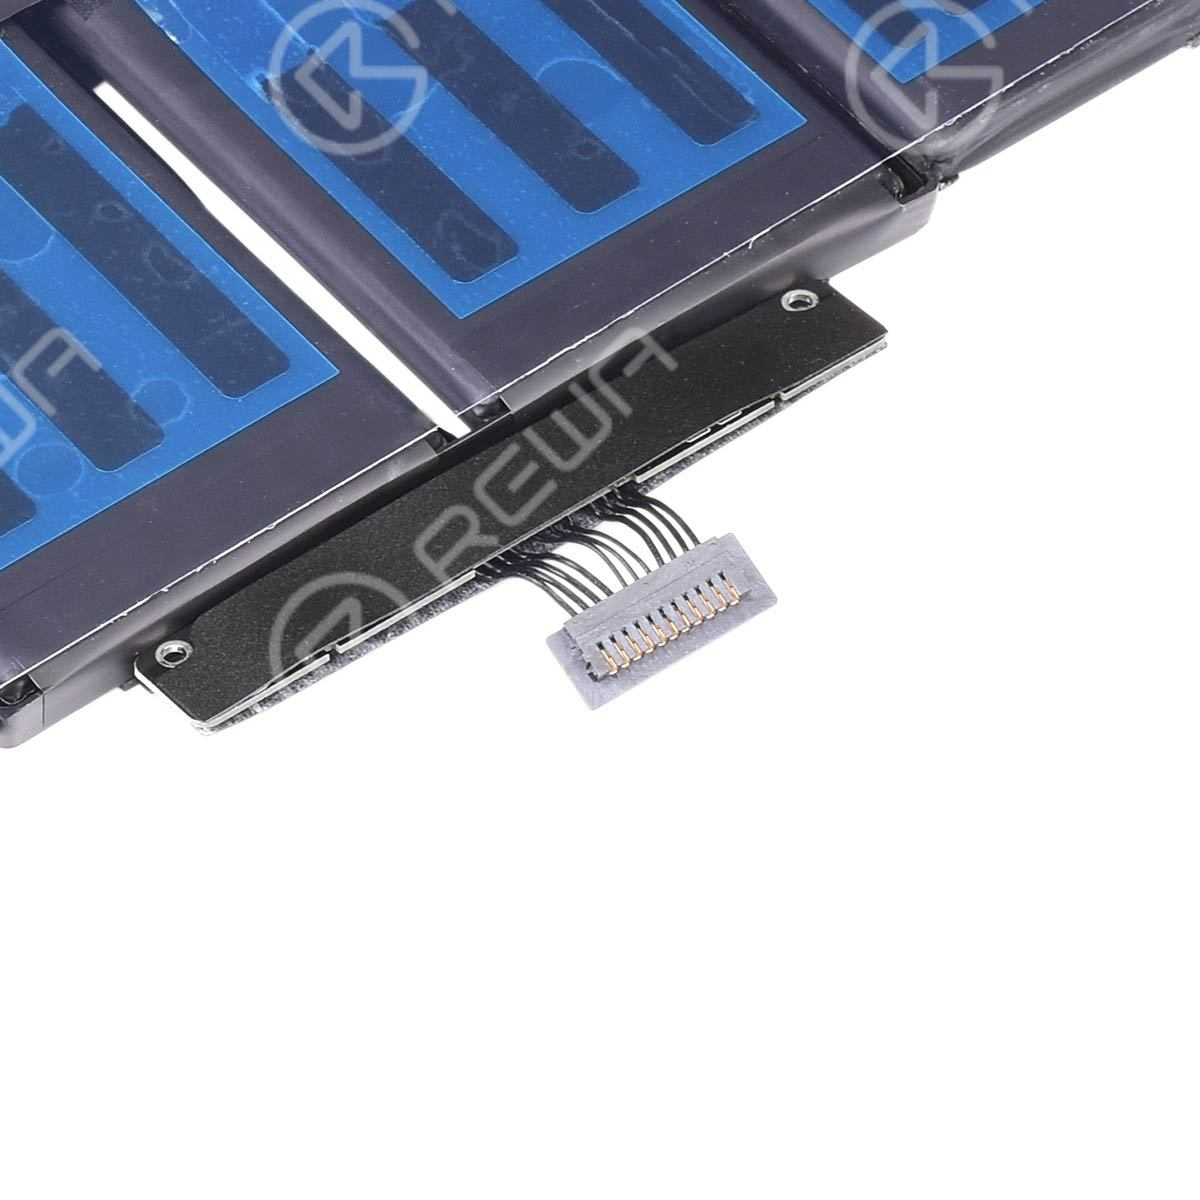 Battery A1494 Compatible For Macbook Pro RETINA 15 inch A1398(LATE 2013 - MID 2014)